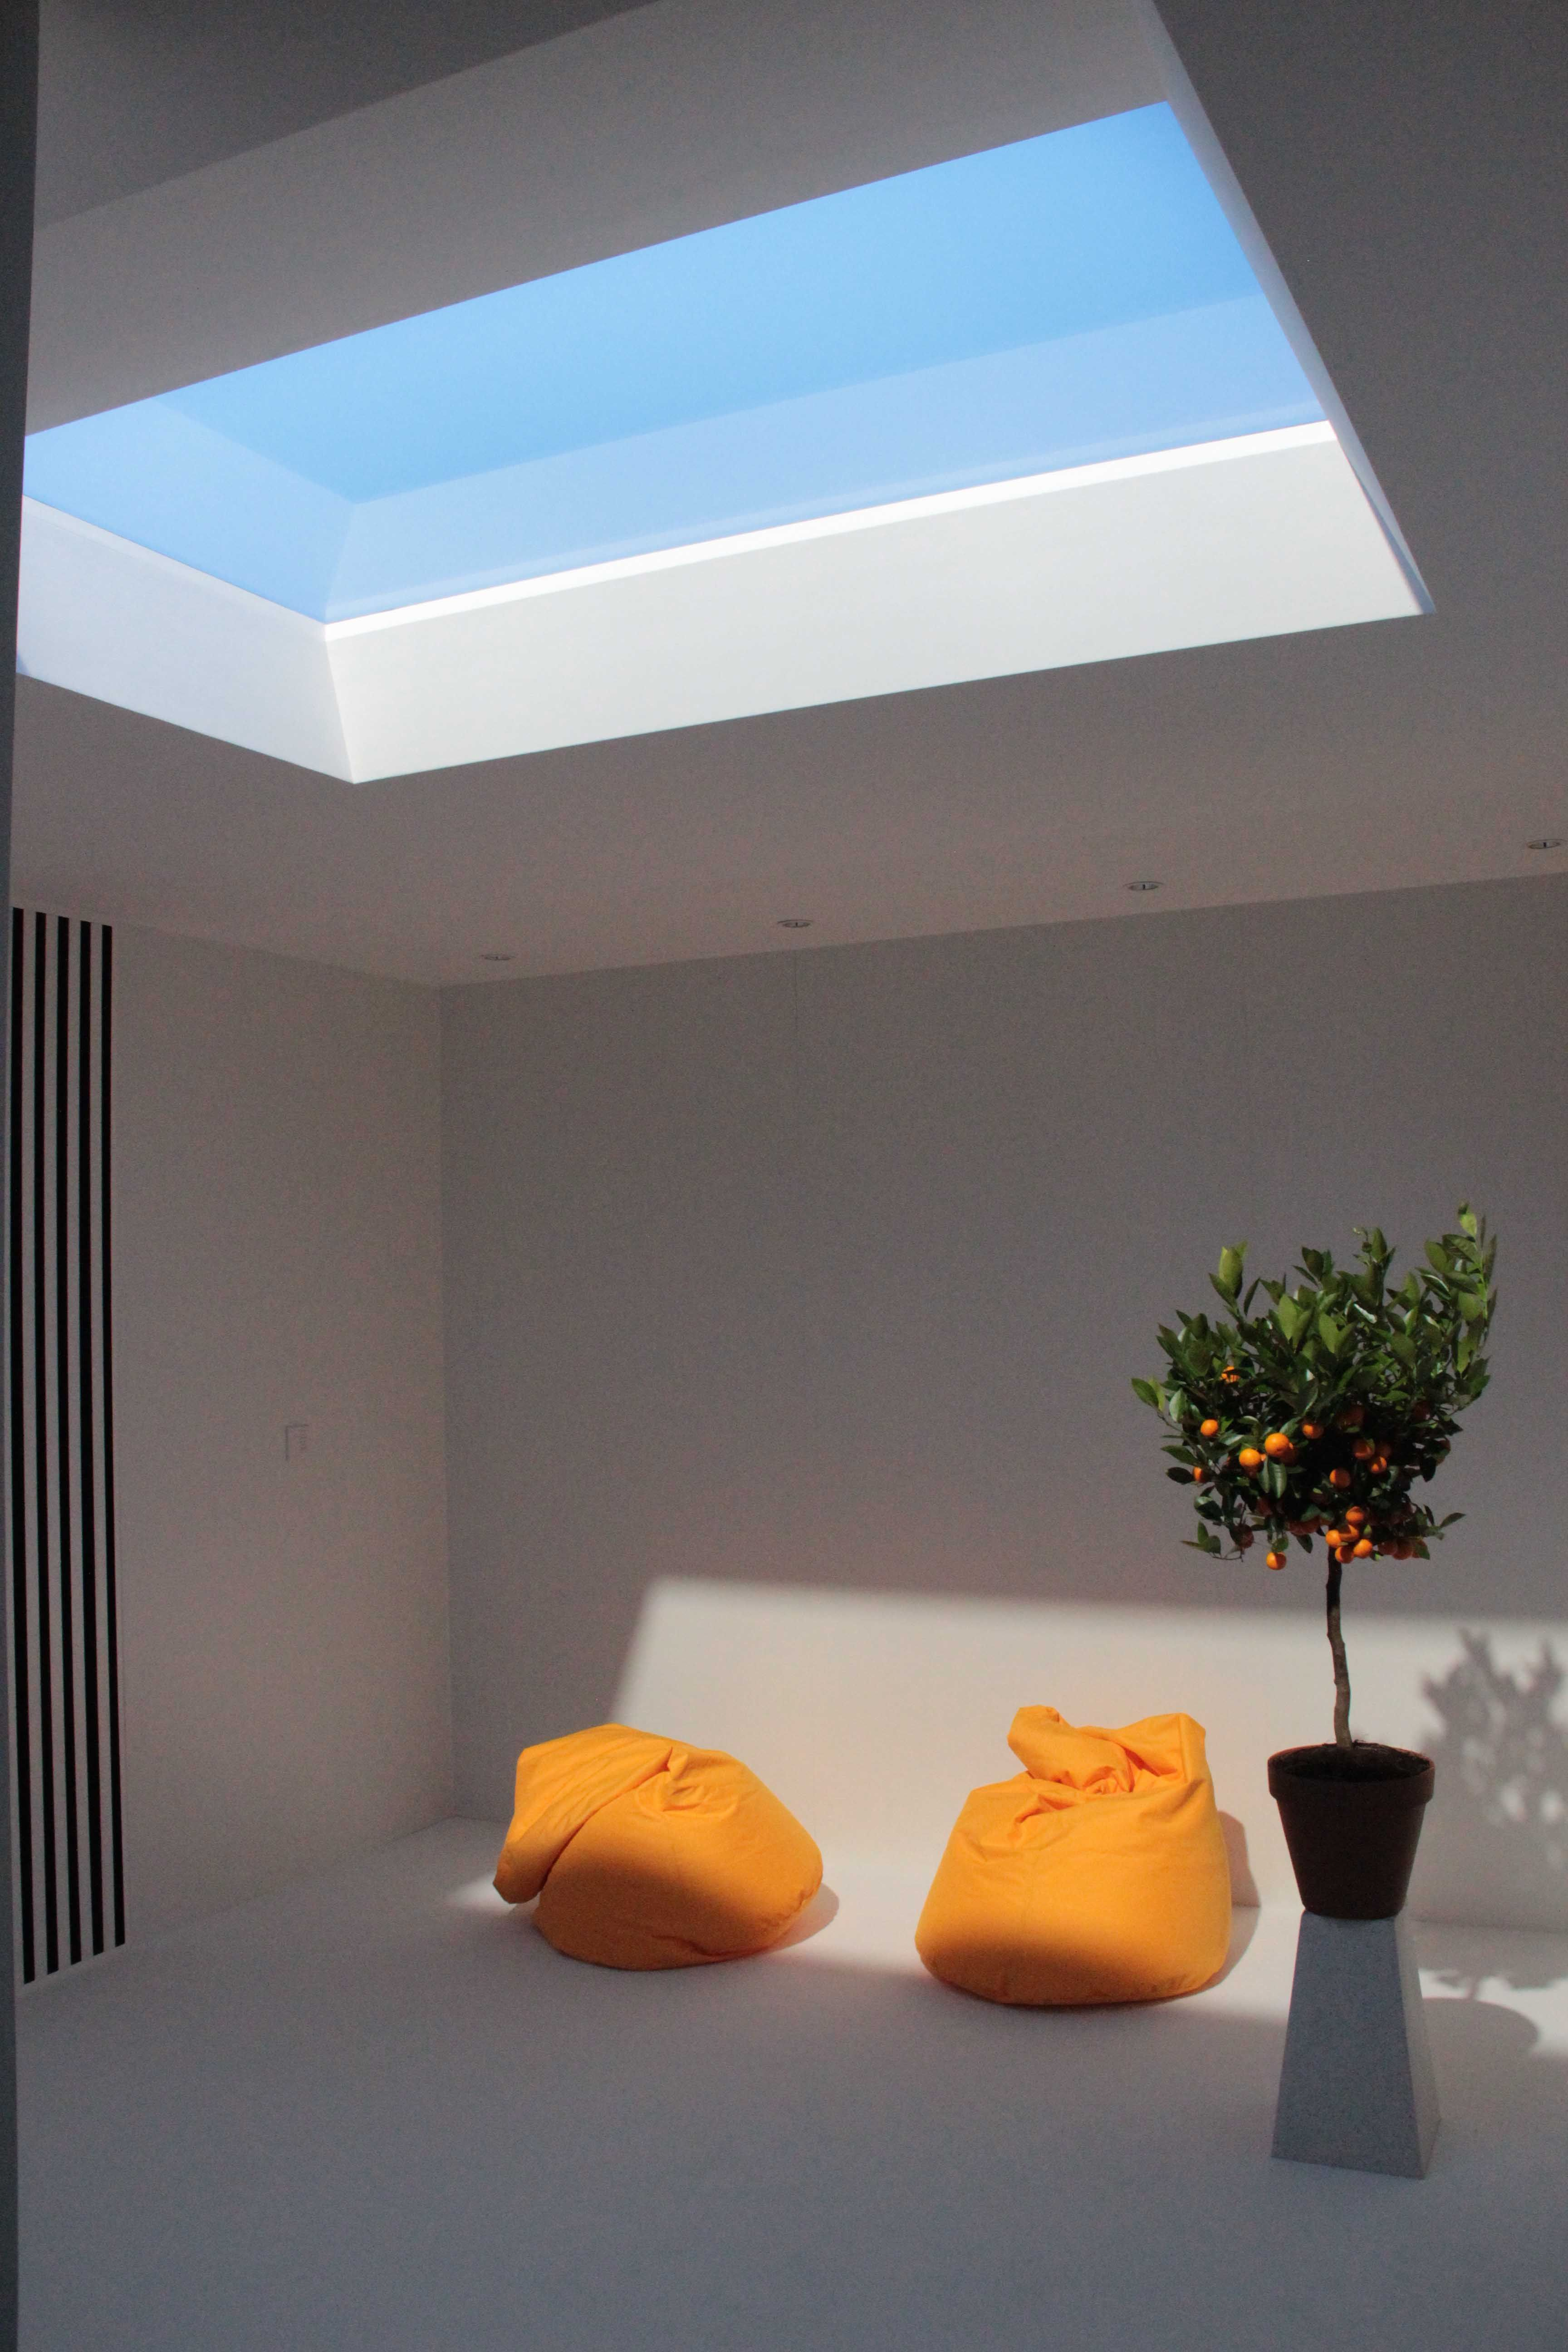 A Great Solution For Windowless Spaces The Coelux Artificial Skylights Reproduce Sunlight And The Sky Experien Skylight Residential Design Artificial Sunlight